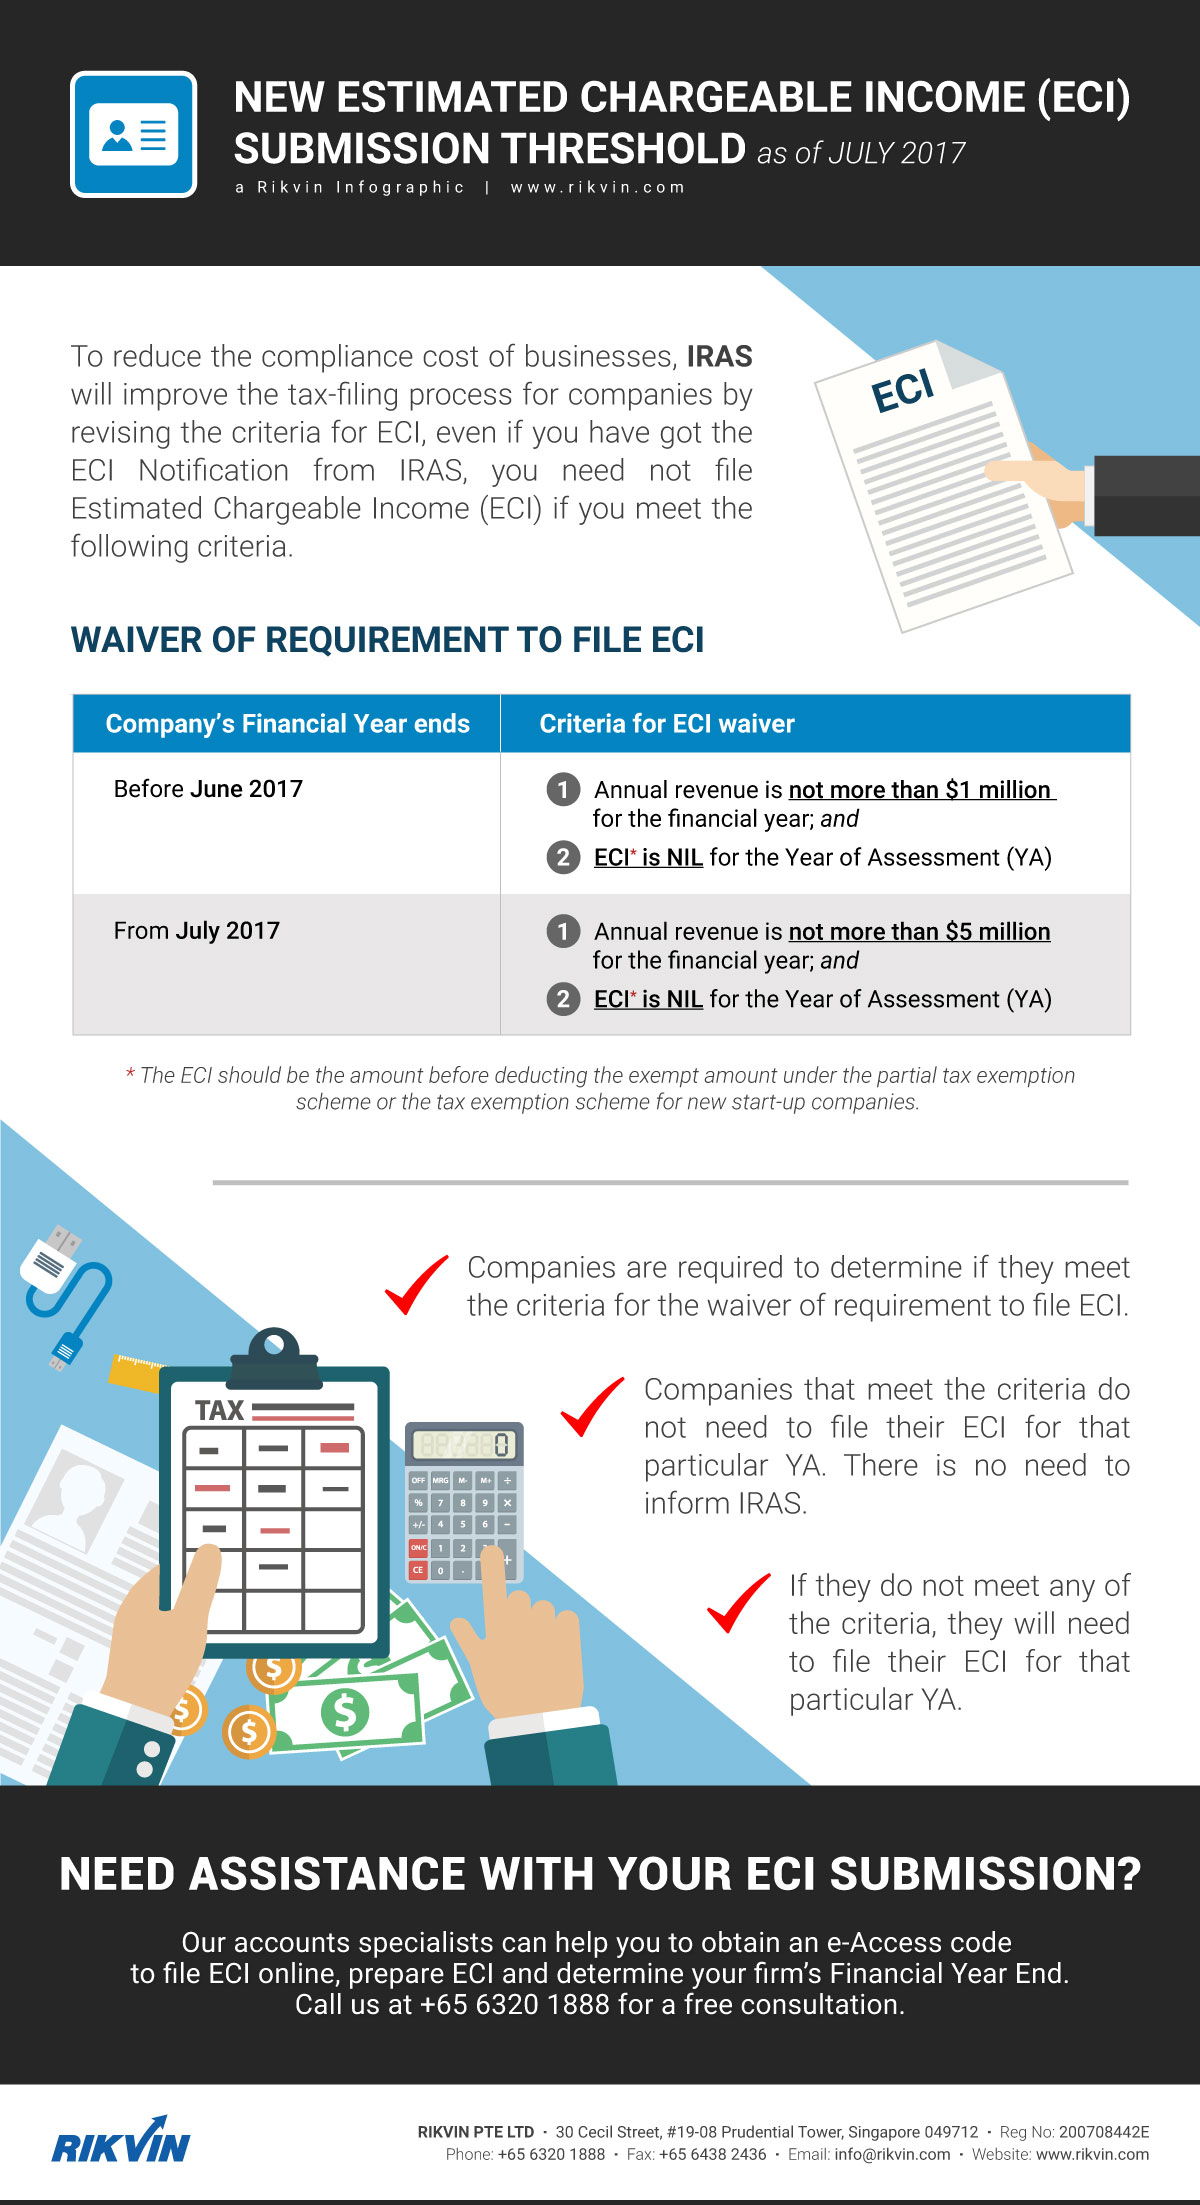 new eci submission threshold july 2017